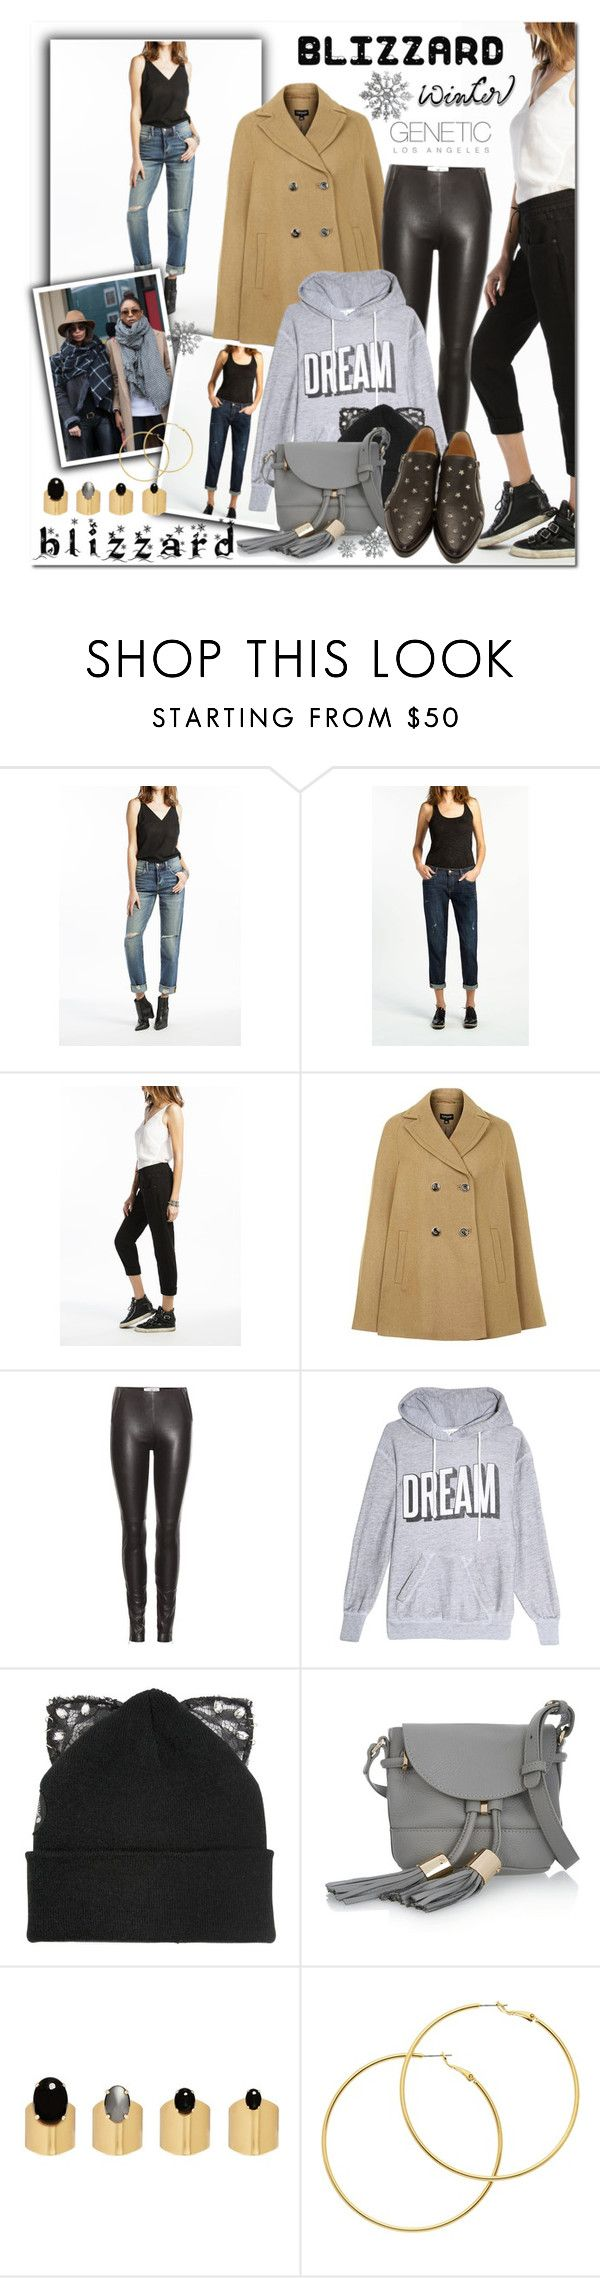 """""""Brrrrr! Winter Blizzard"""" by sweetsely ❤ liked on Polyvore featuring Topshop, Maison Margiela, Wildfox, Silver Spoon Attire, See by Chloé, Ela Stone, Melissa Odabash, Jimmy Choo, Genetic Denim and polyvoreeditorial"""